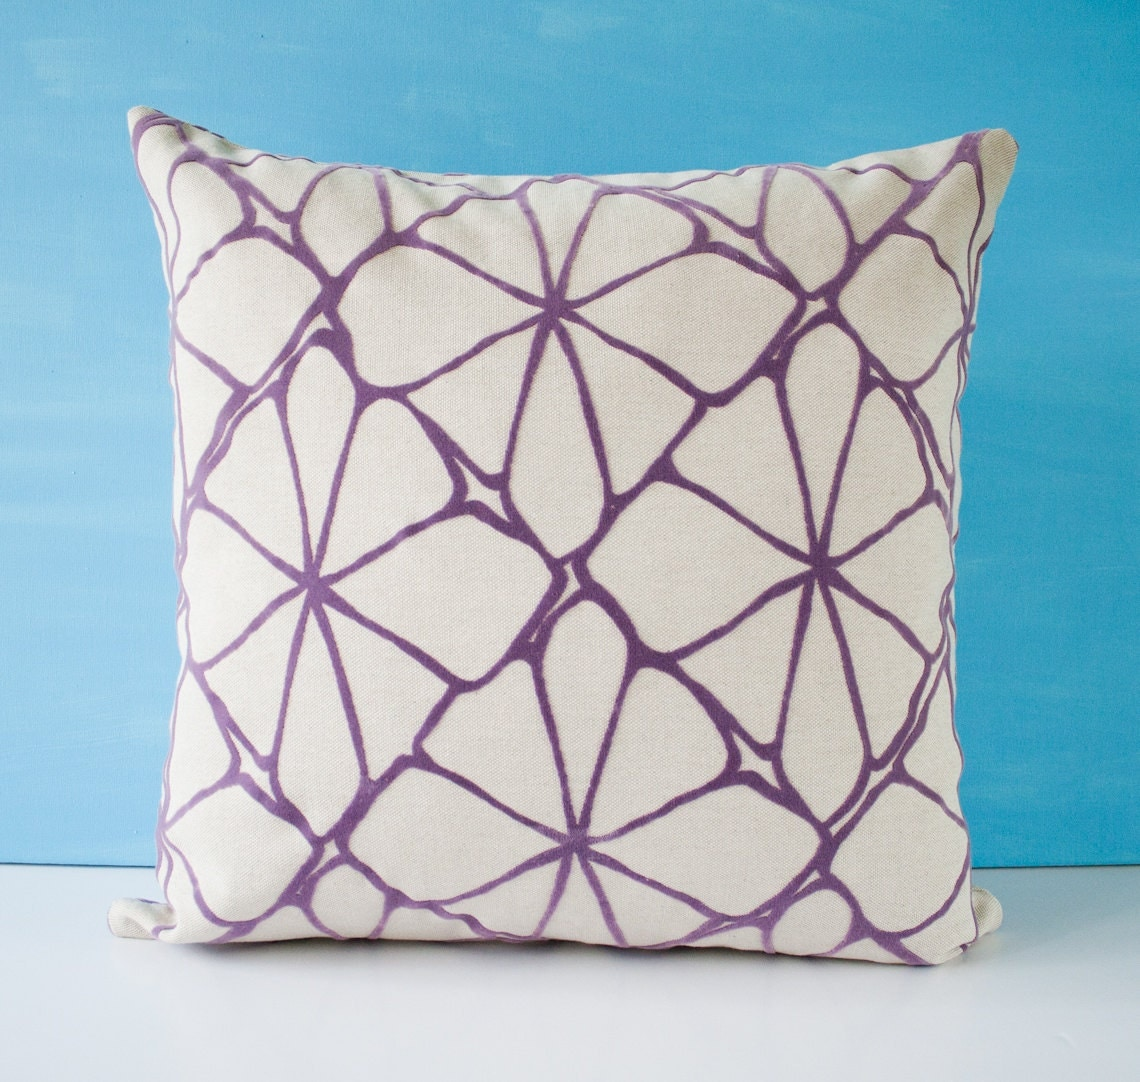 Fancy Throw Pillow Patterns : Purple pattern pillow cover decorative pillow throw pillow